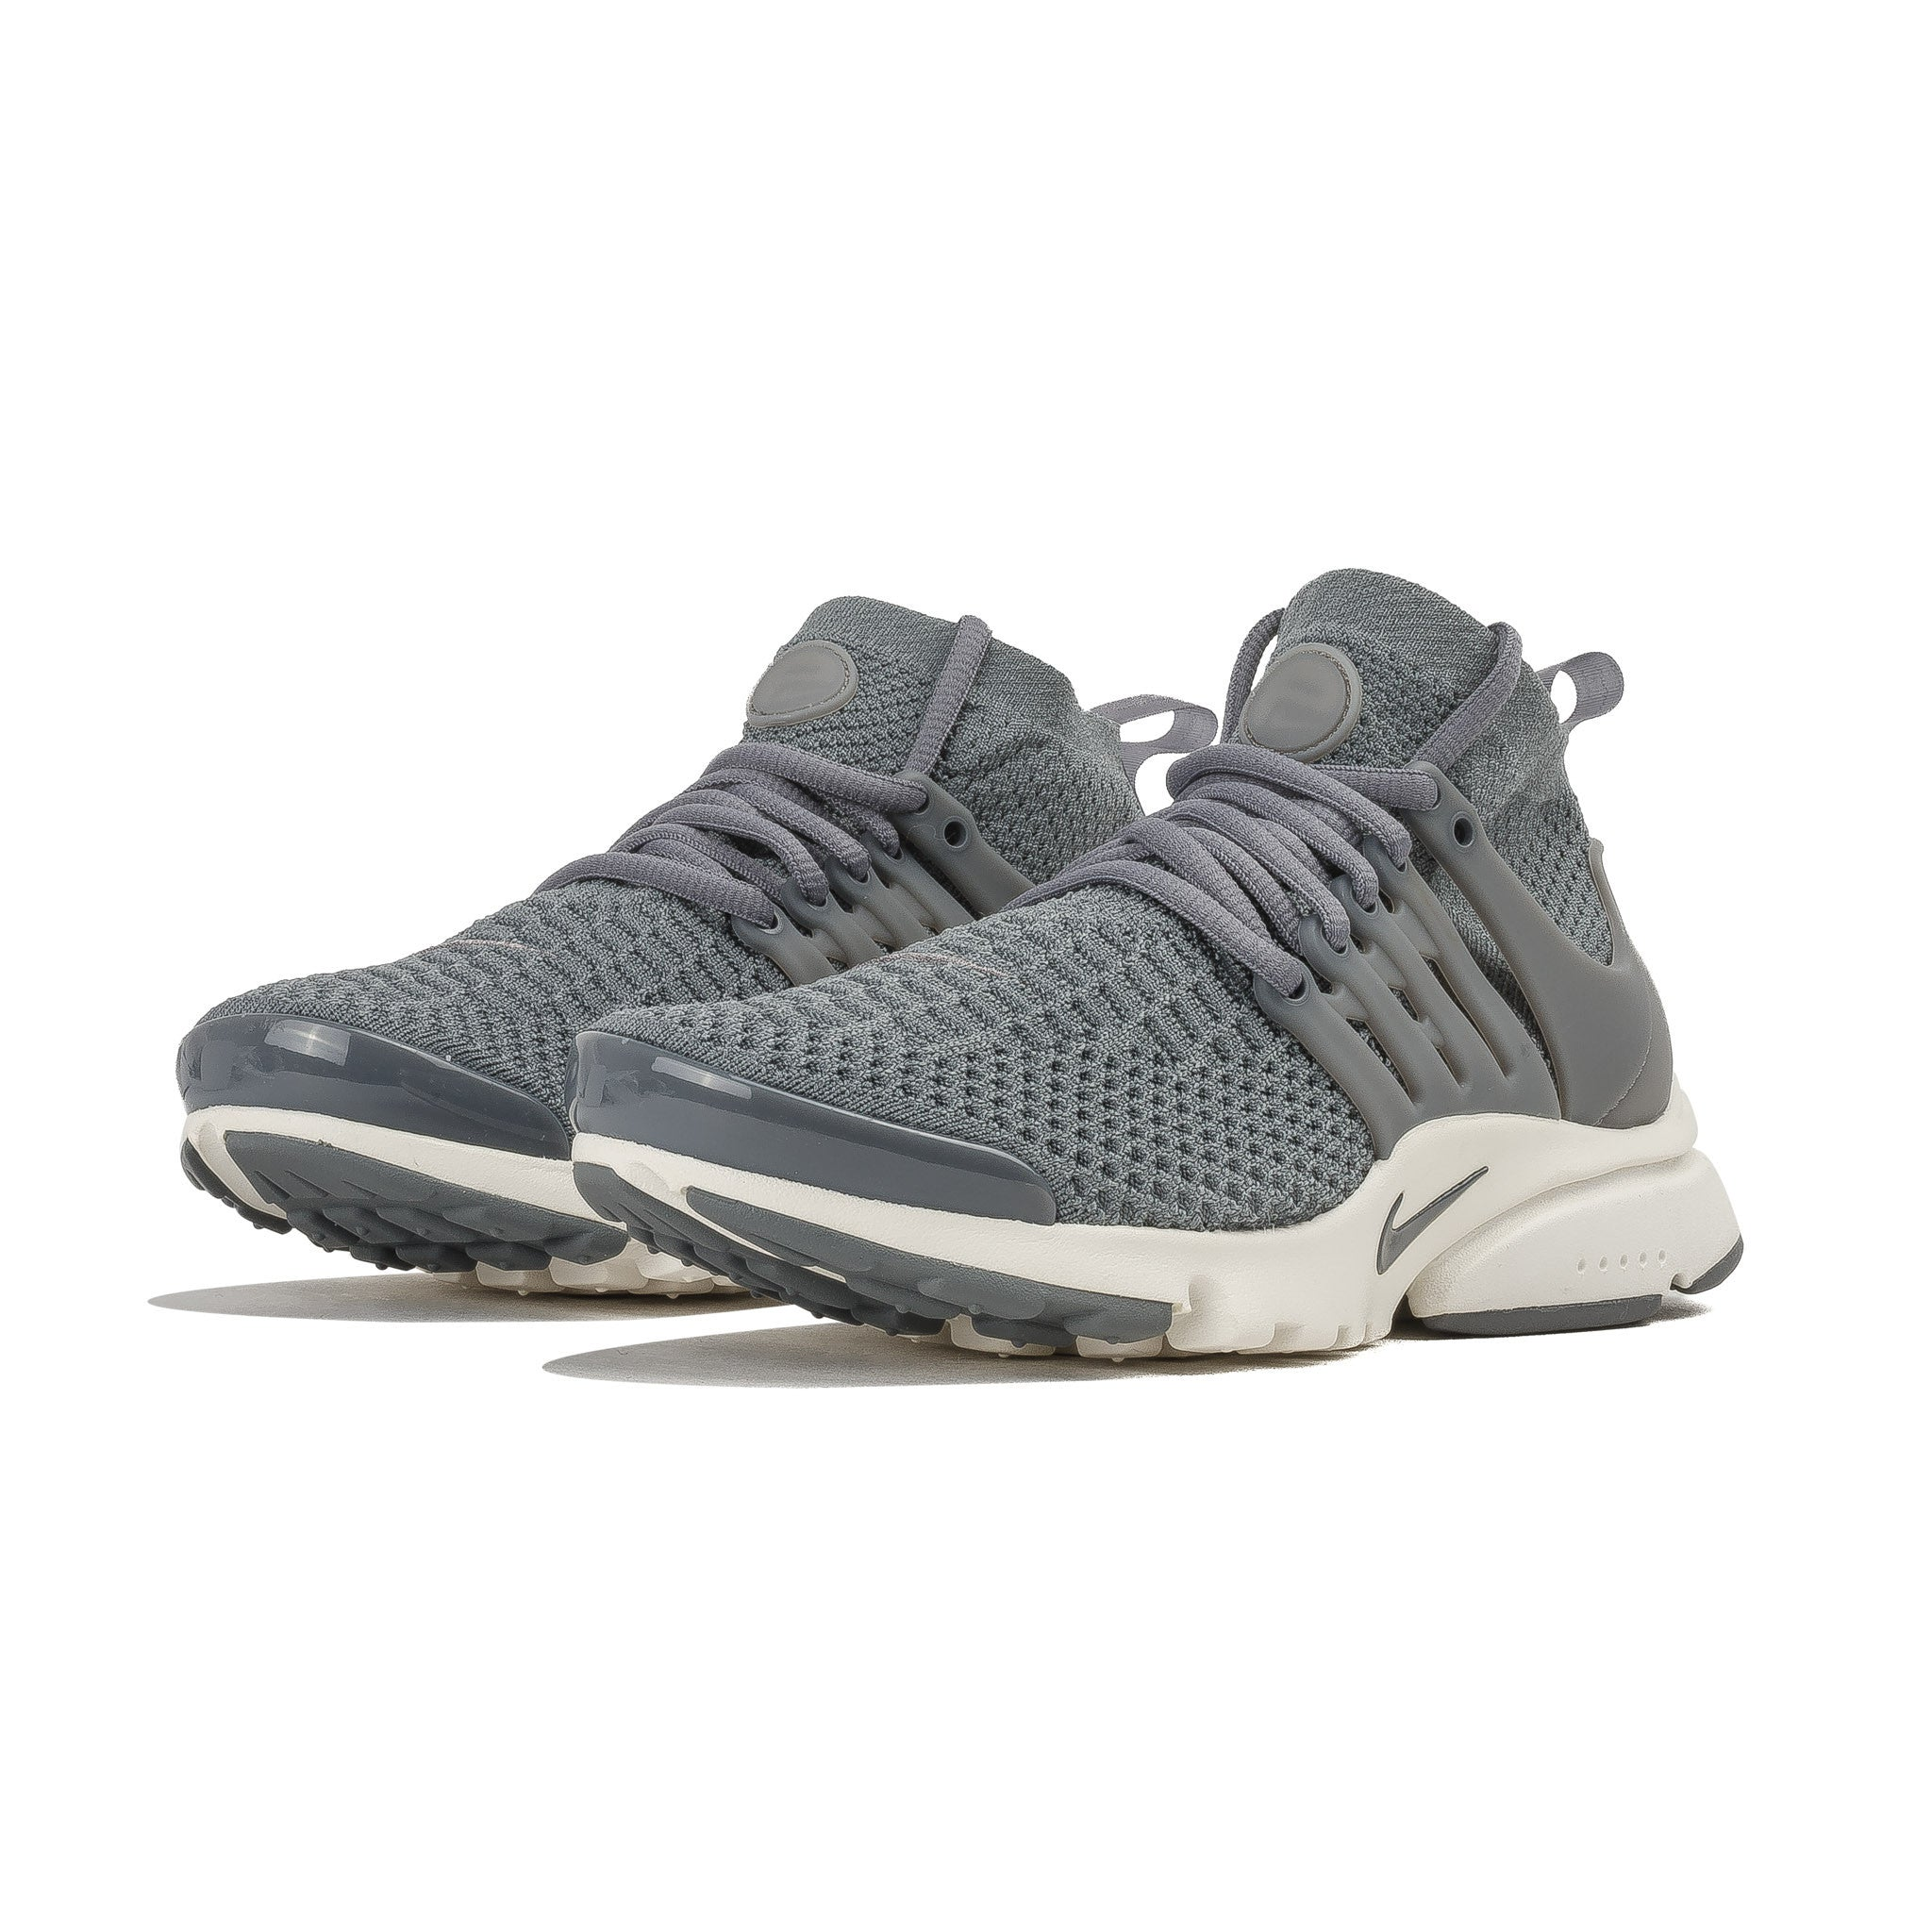 WMNS Air Presto Flyknit Ultra 835738-002